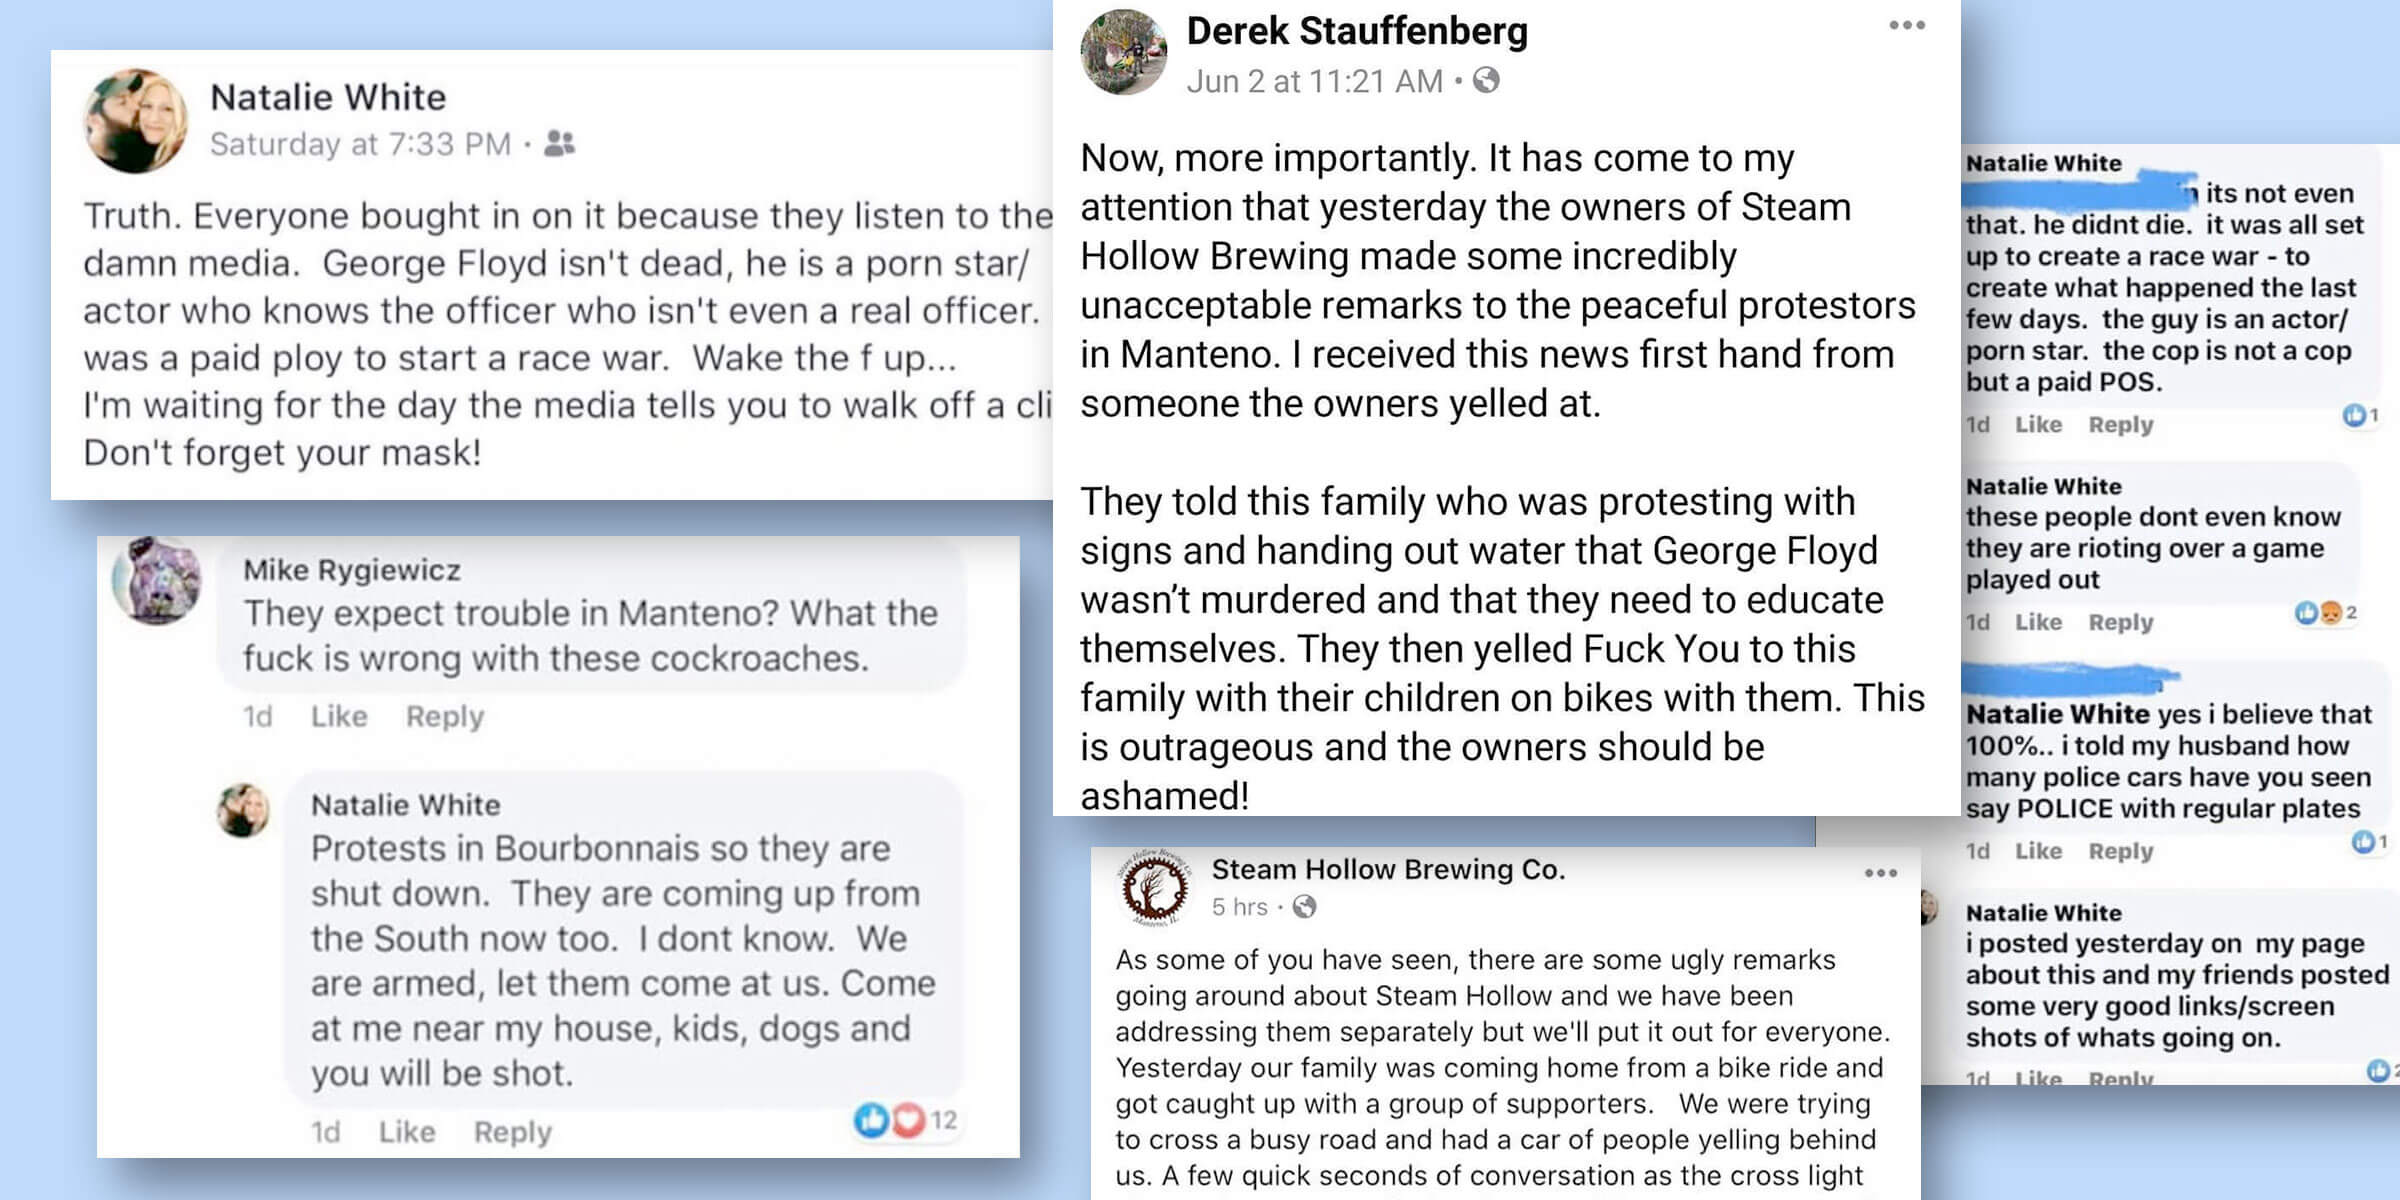 Steam Hollow Brewing made the outrageous claim that the murder of George Floyd was staged, and as one would expect, the backlash was justifiably fierce.